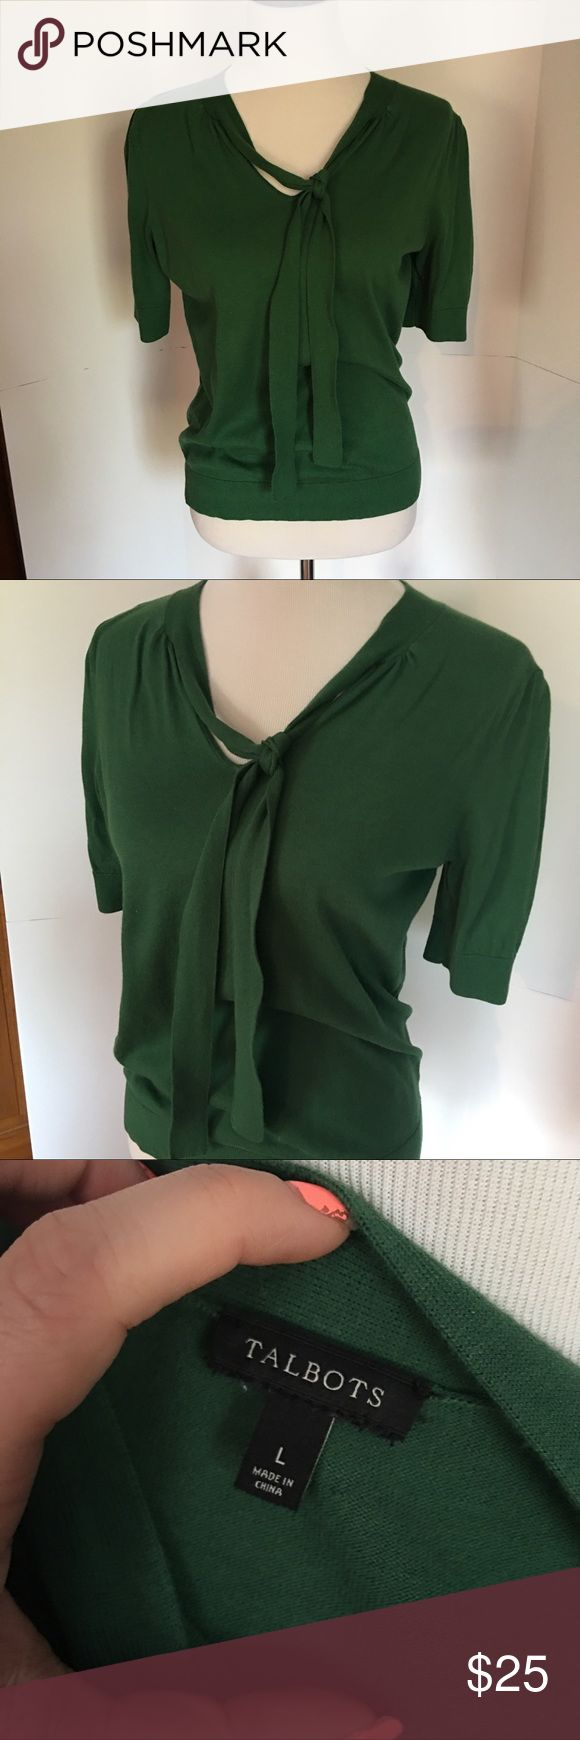 Green talbots sweater top size L Green short sleeve top with neck tie. Lovely vibrant green color. Great for work. Size large from talbots Talbots Tops